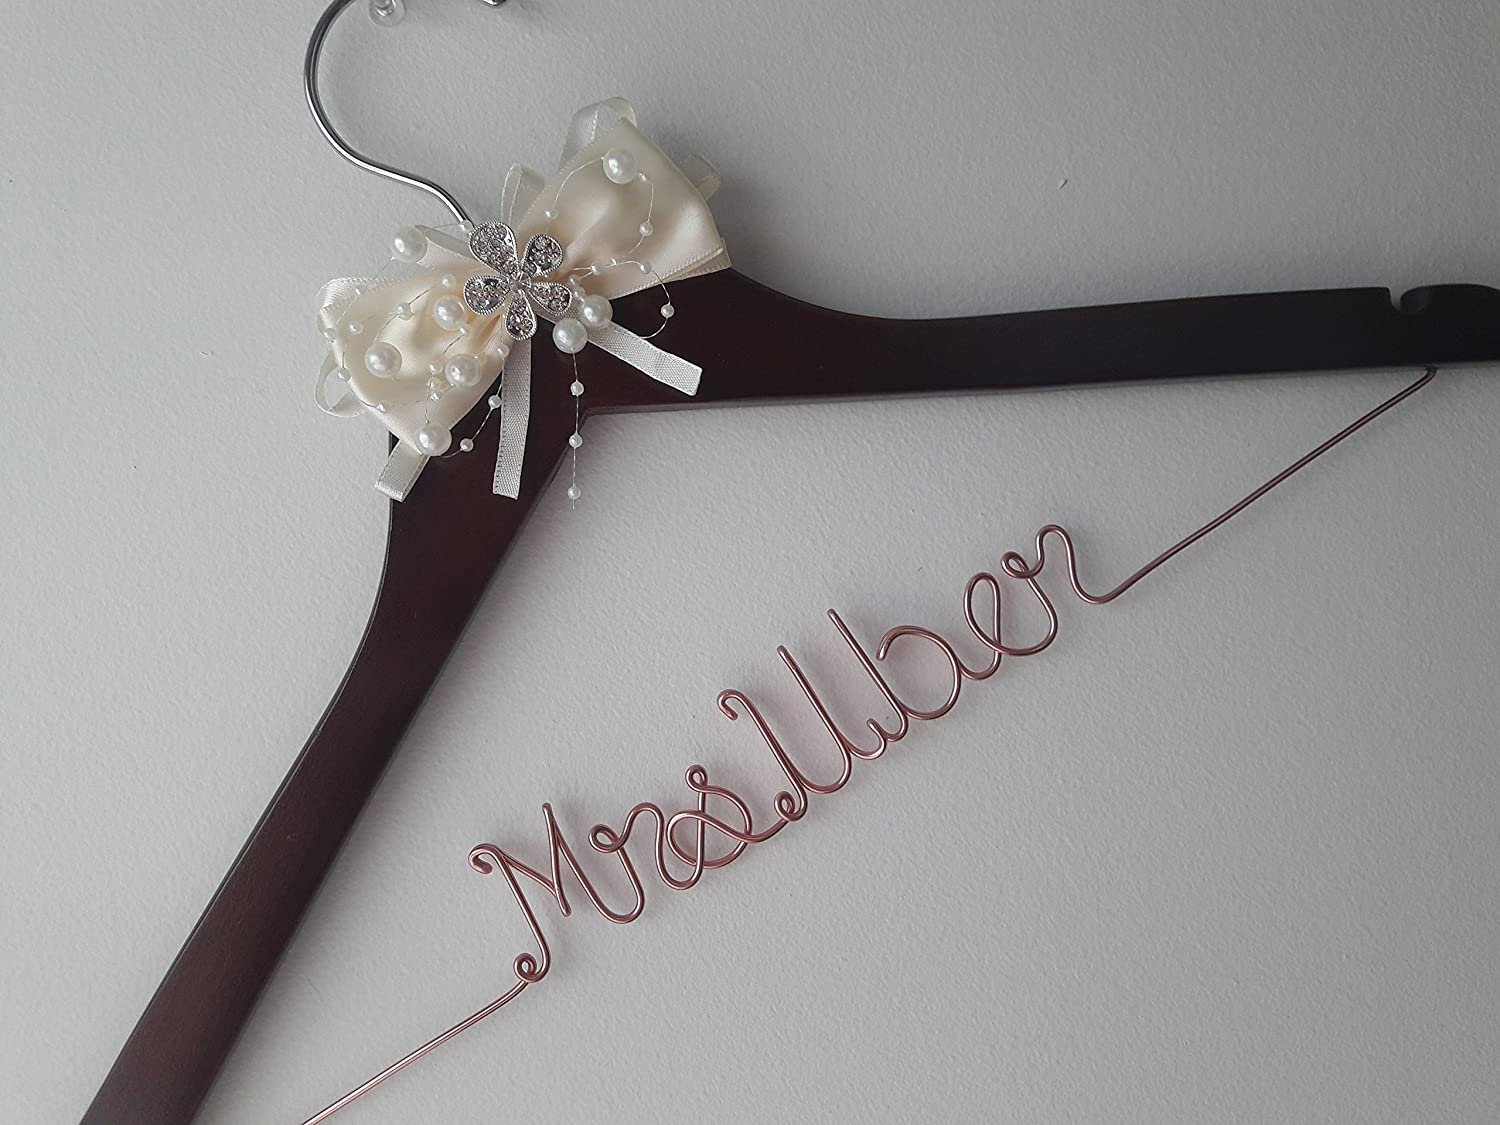 Wedding Hanger, One Line Personalized wedding hanger, Brides Hanger, Personalized Bridal Gift, Wedding Dress Hanger, Bridesmaid, With Ivory Bow, Rhinestone, Pearls, Rose Gold.